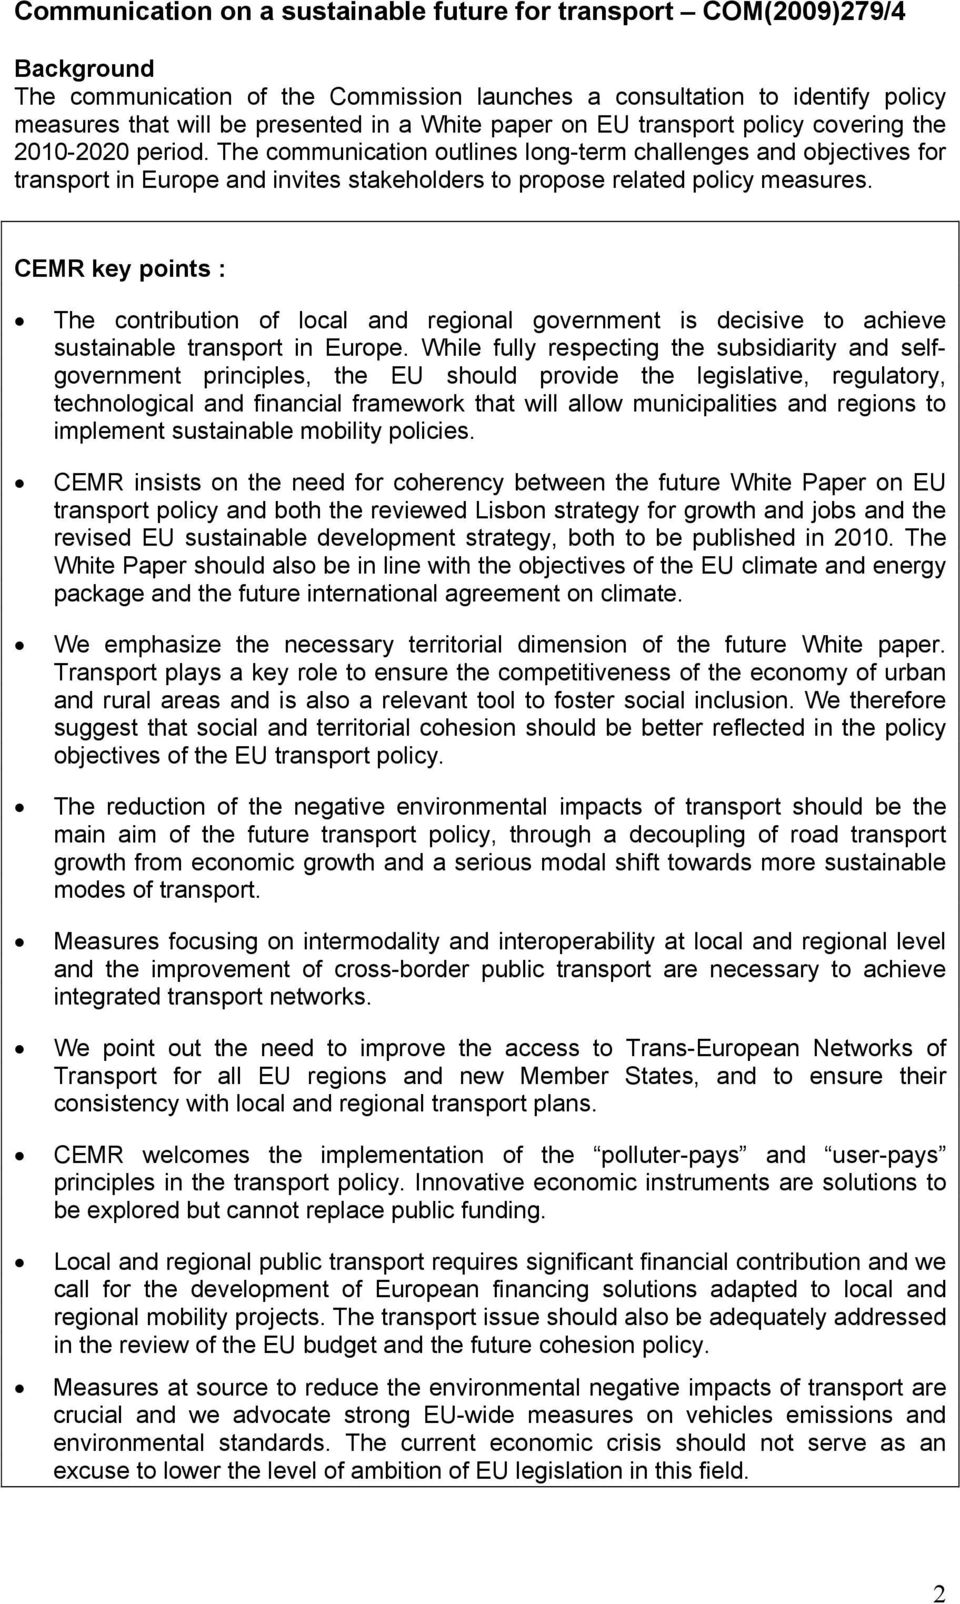 The communication outlines long-term challenges and objectives for transport in Europe and invites stakeholders to propose related policy measures.